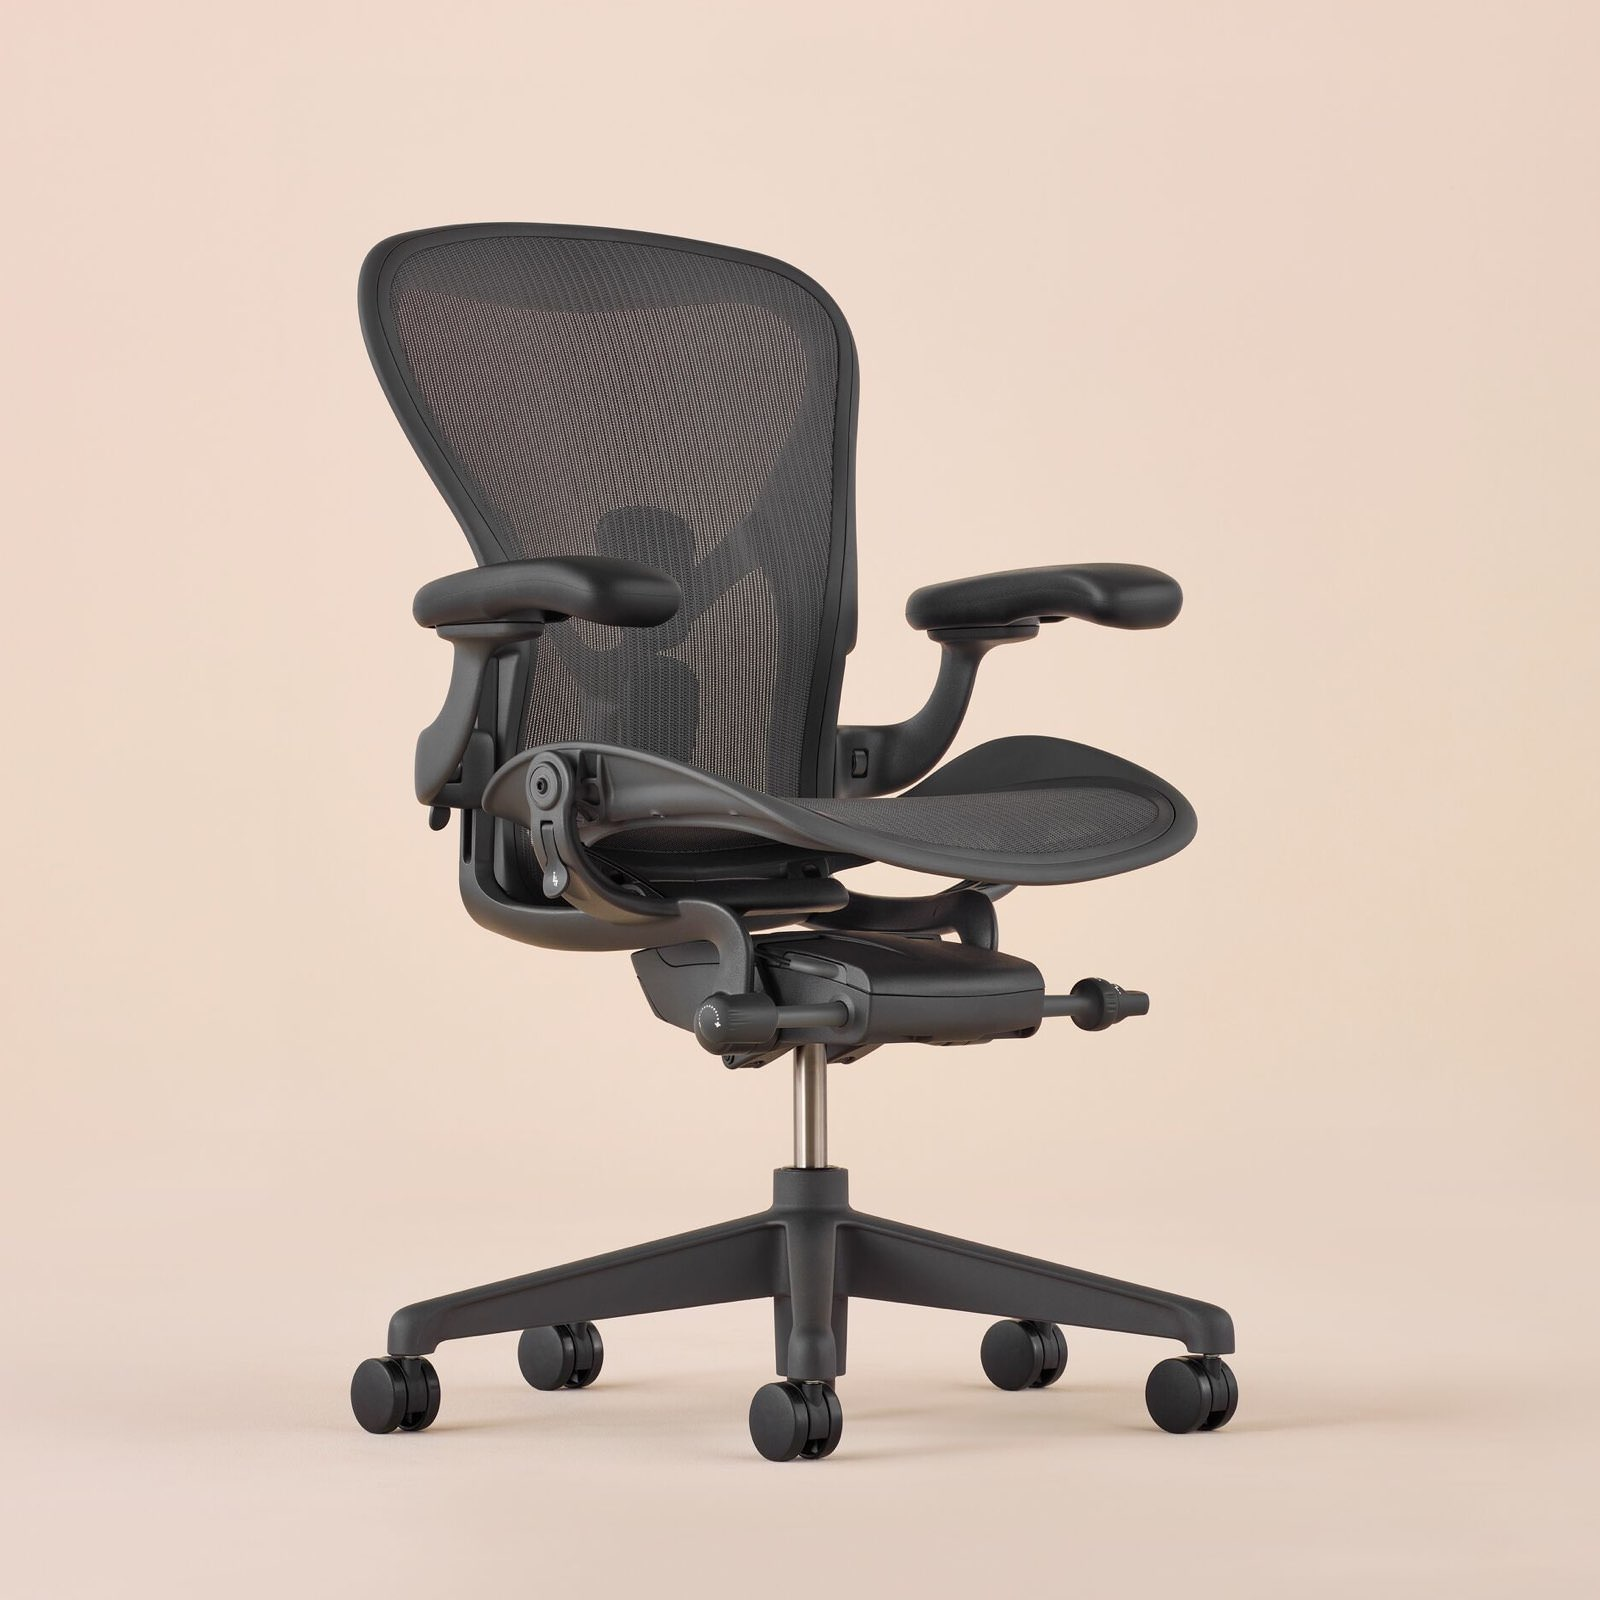 A full view of the Aeron Chair swiveled 45 degrees to the right.